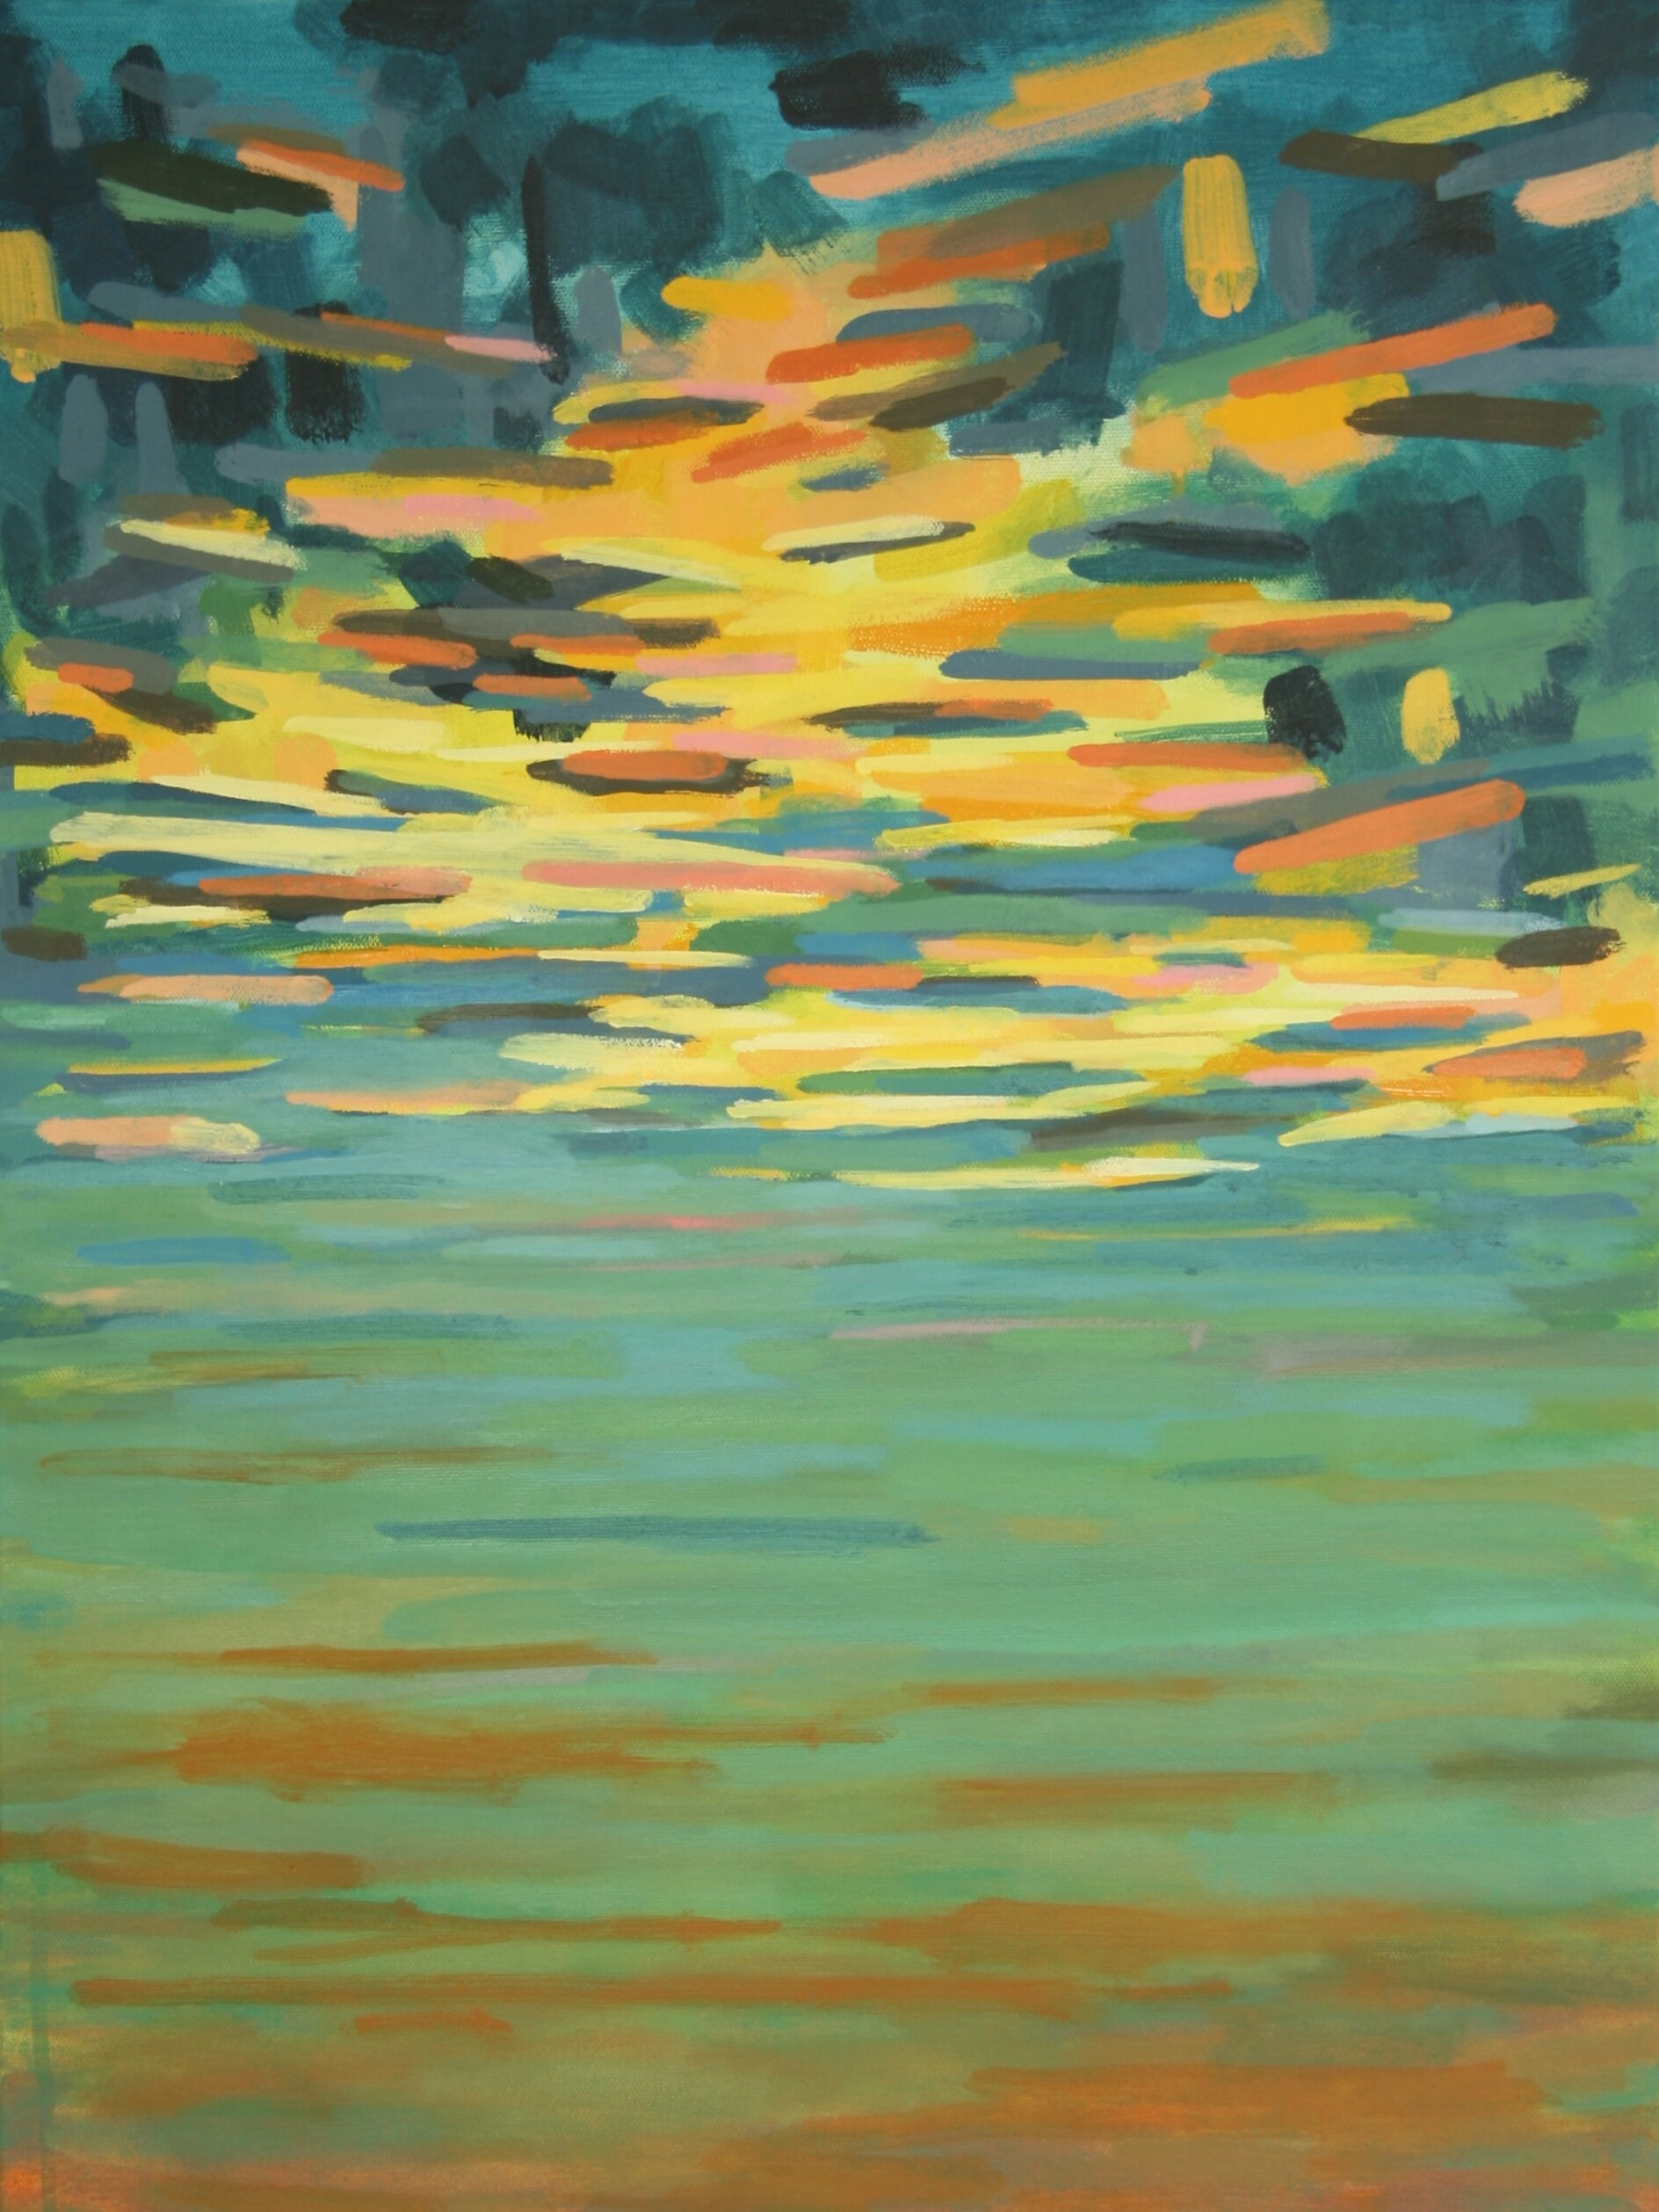 """'Afterglow'  2013  18"""" x 24""""  water soluble oil on canvas  sold"""